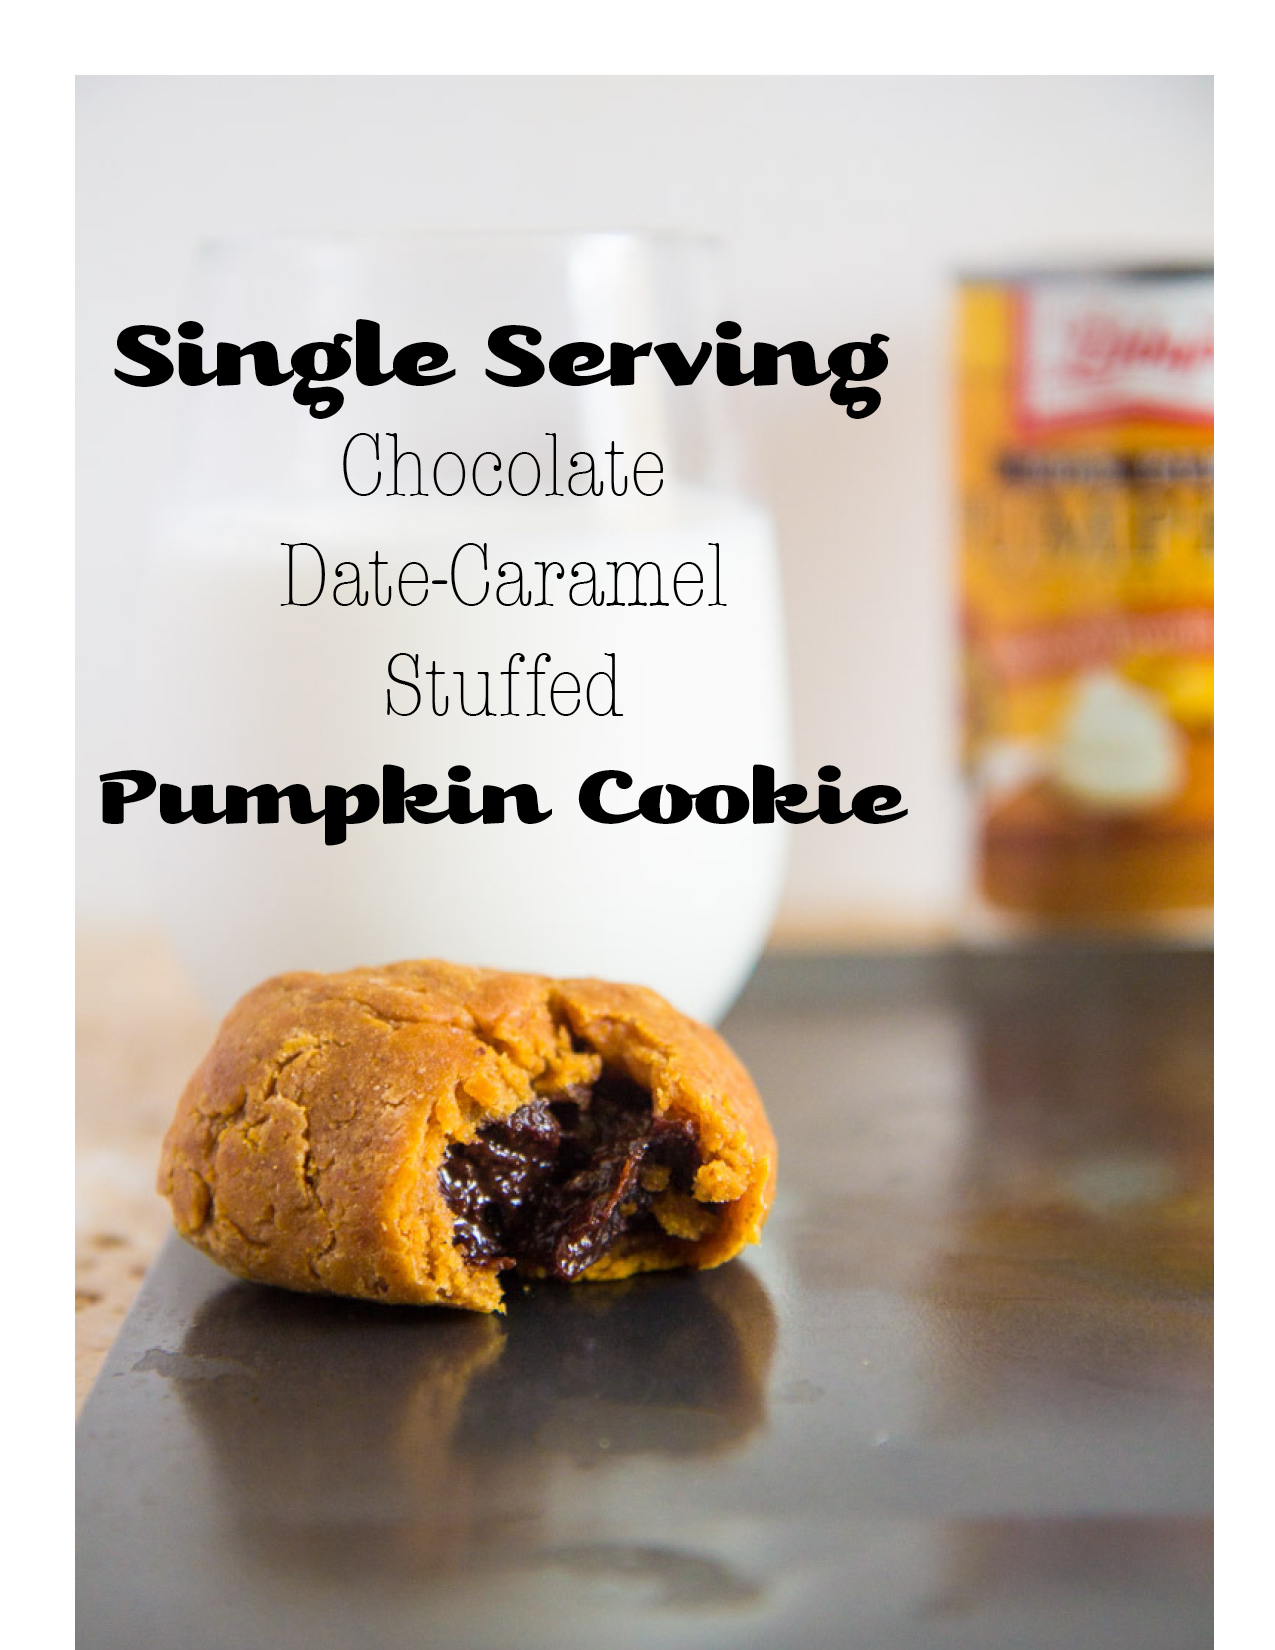 Chocolate Date Caramel Pumpkin Cookie